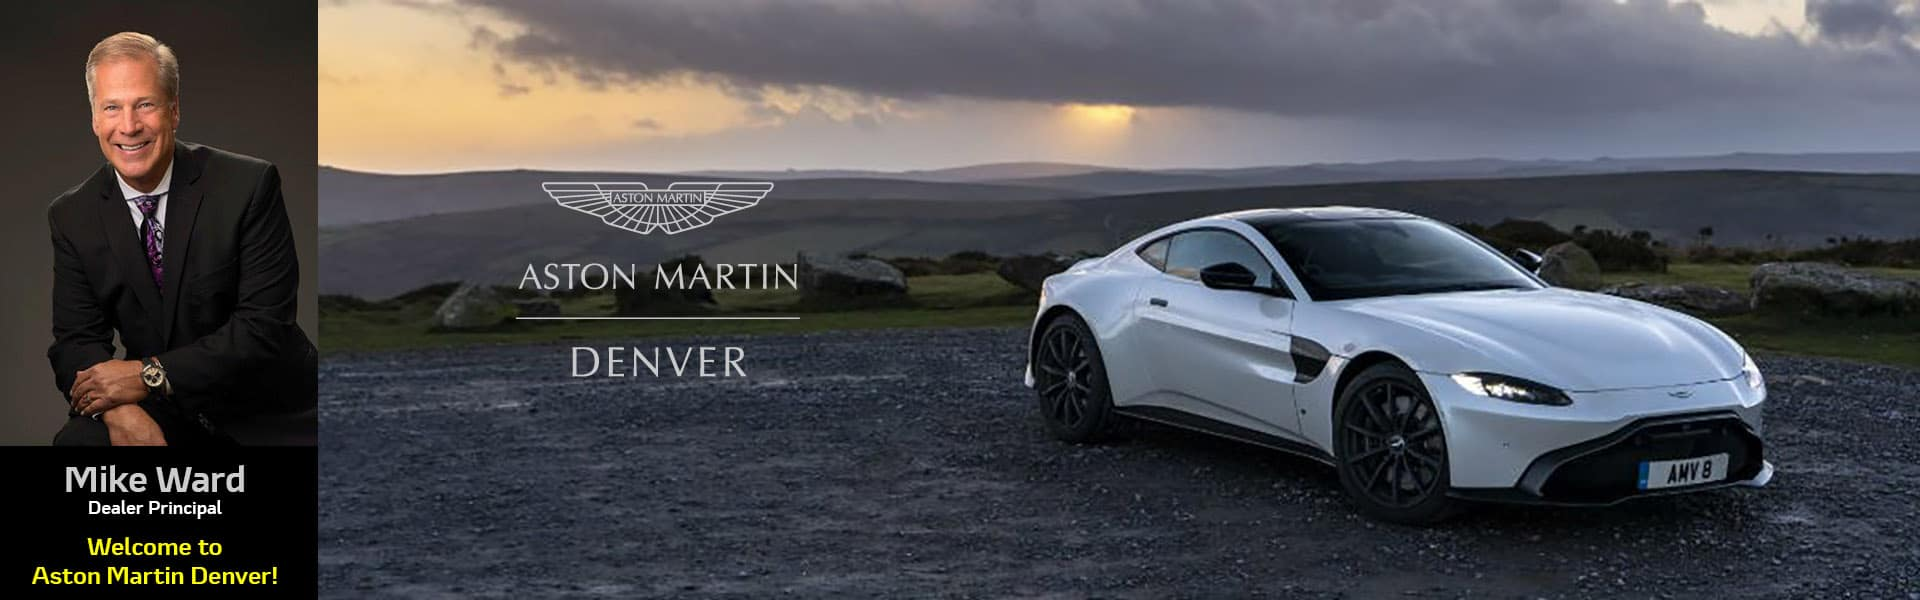 Welcome to Aston Martin Denver